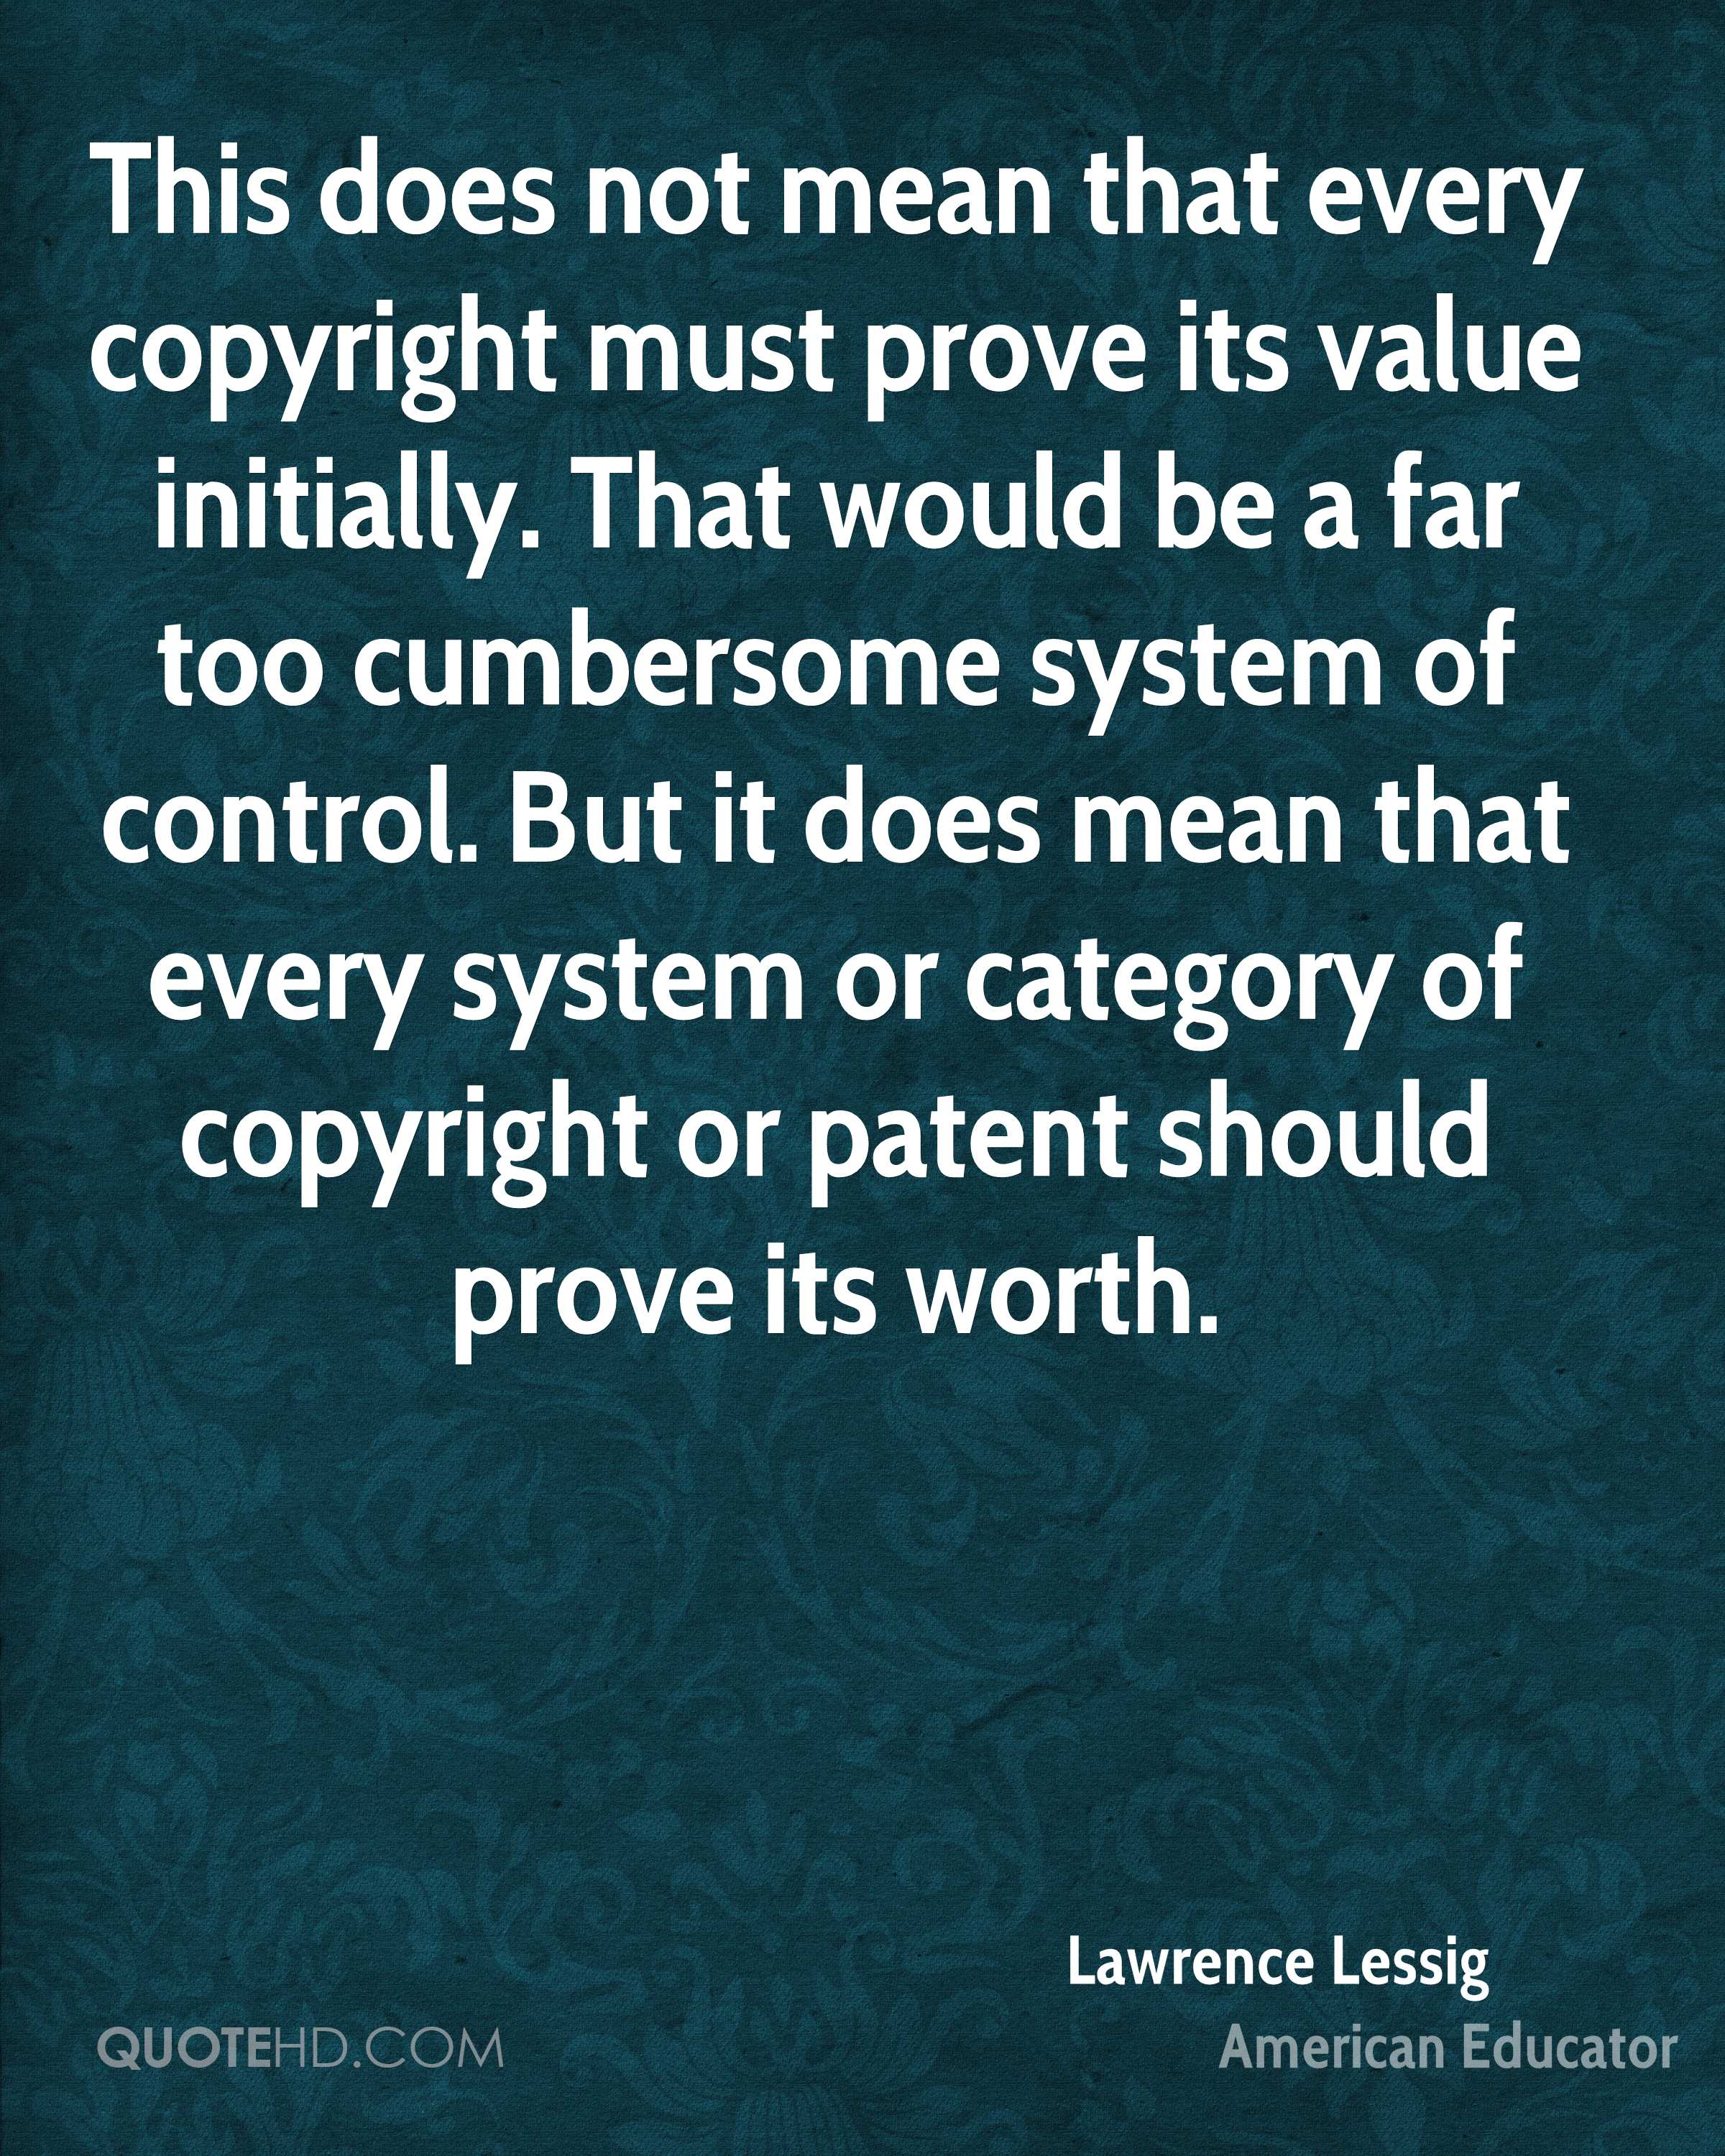 This does not mean that every copyright must prove its value initially. That would be a far too cumbersome system of control. But it does mean that every system or category of copyright or patent should prove its worth.